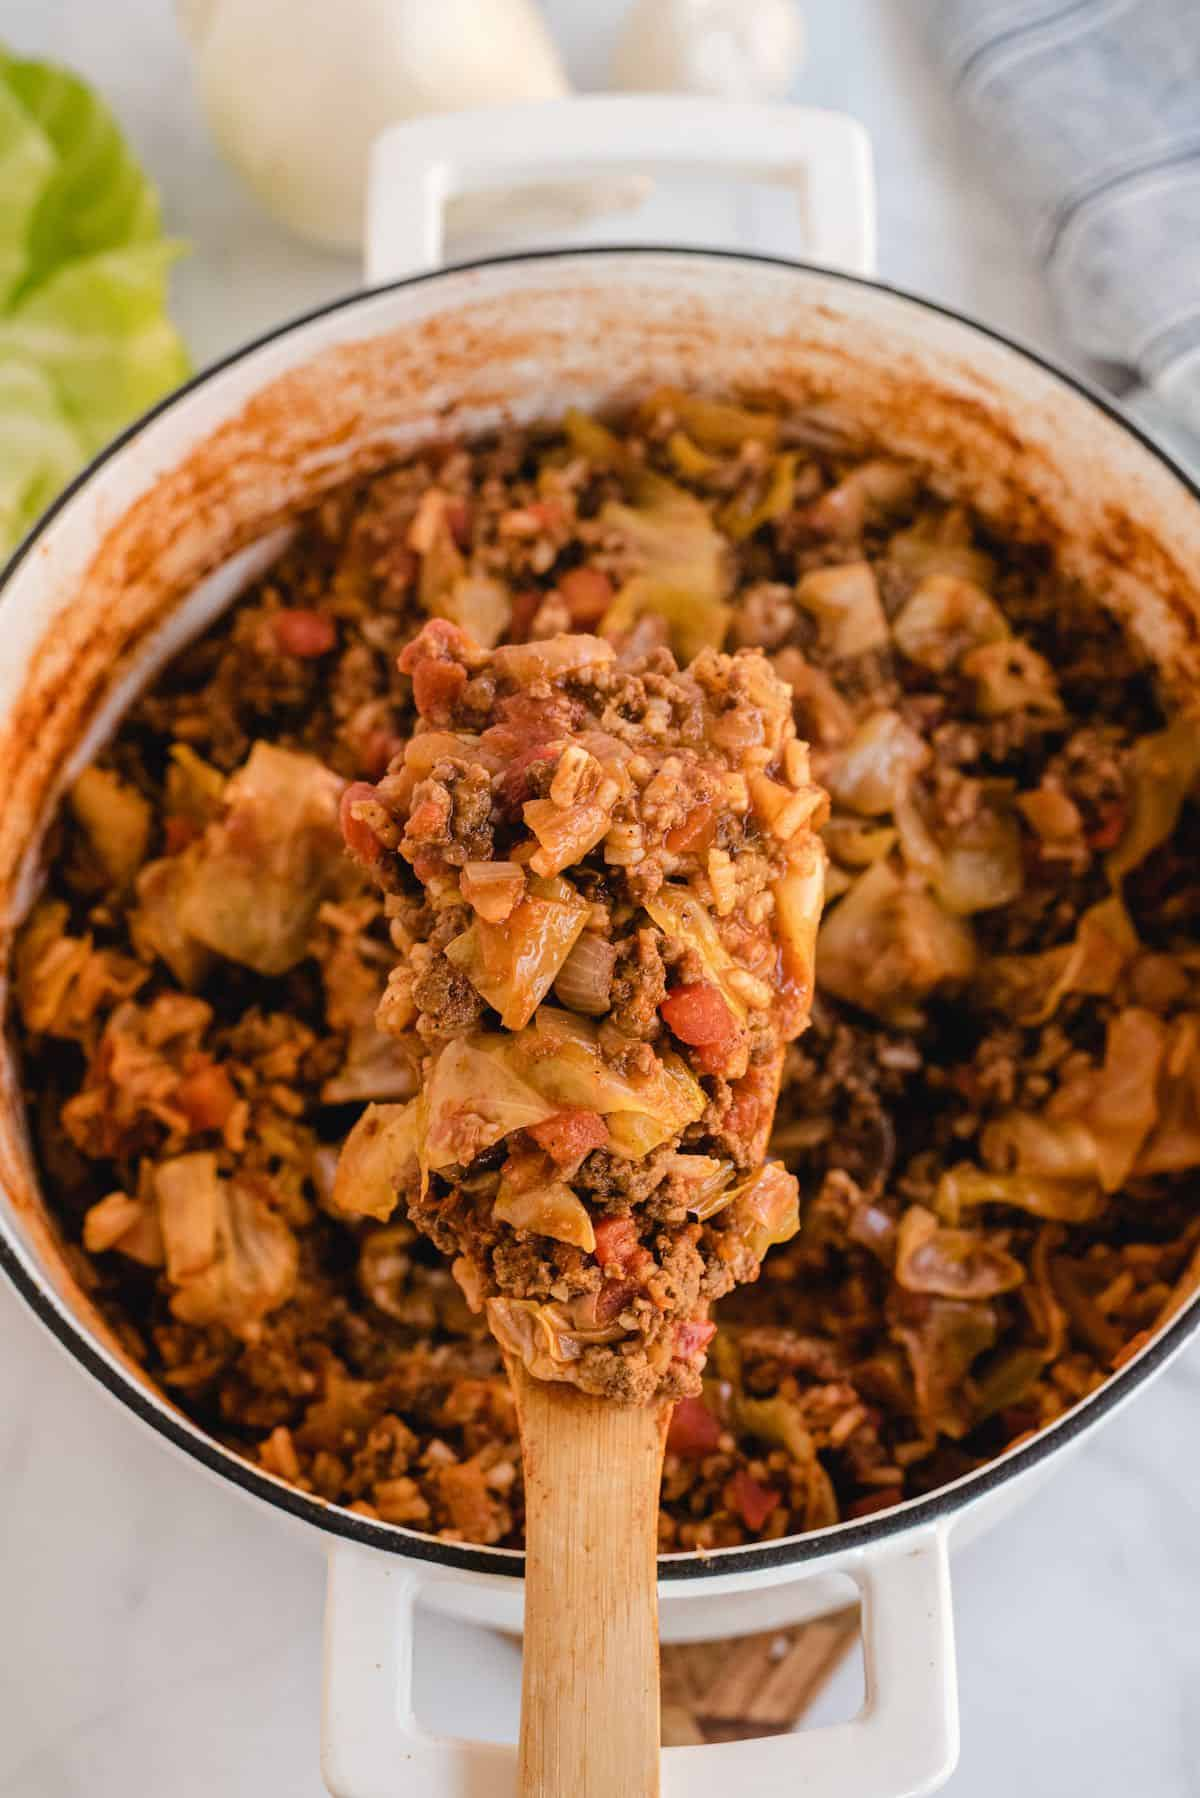 unstuffed cabbage bowls on a wooden spoon